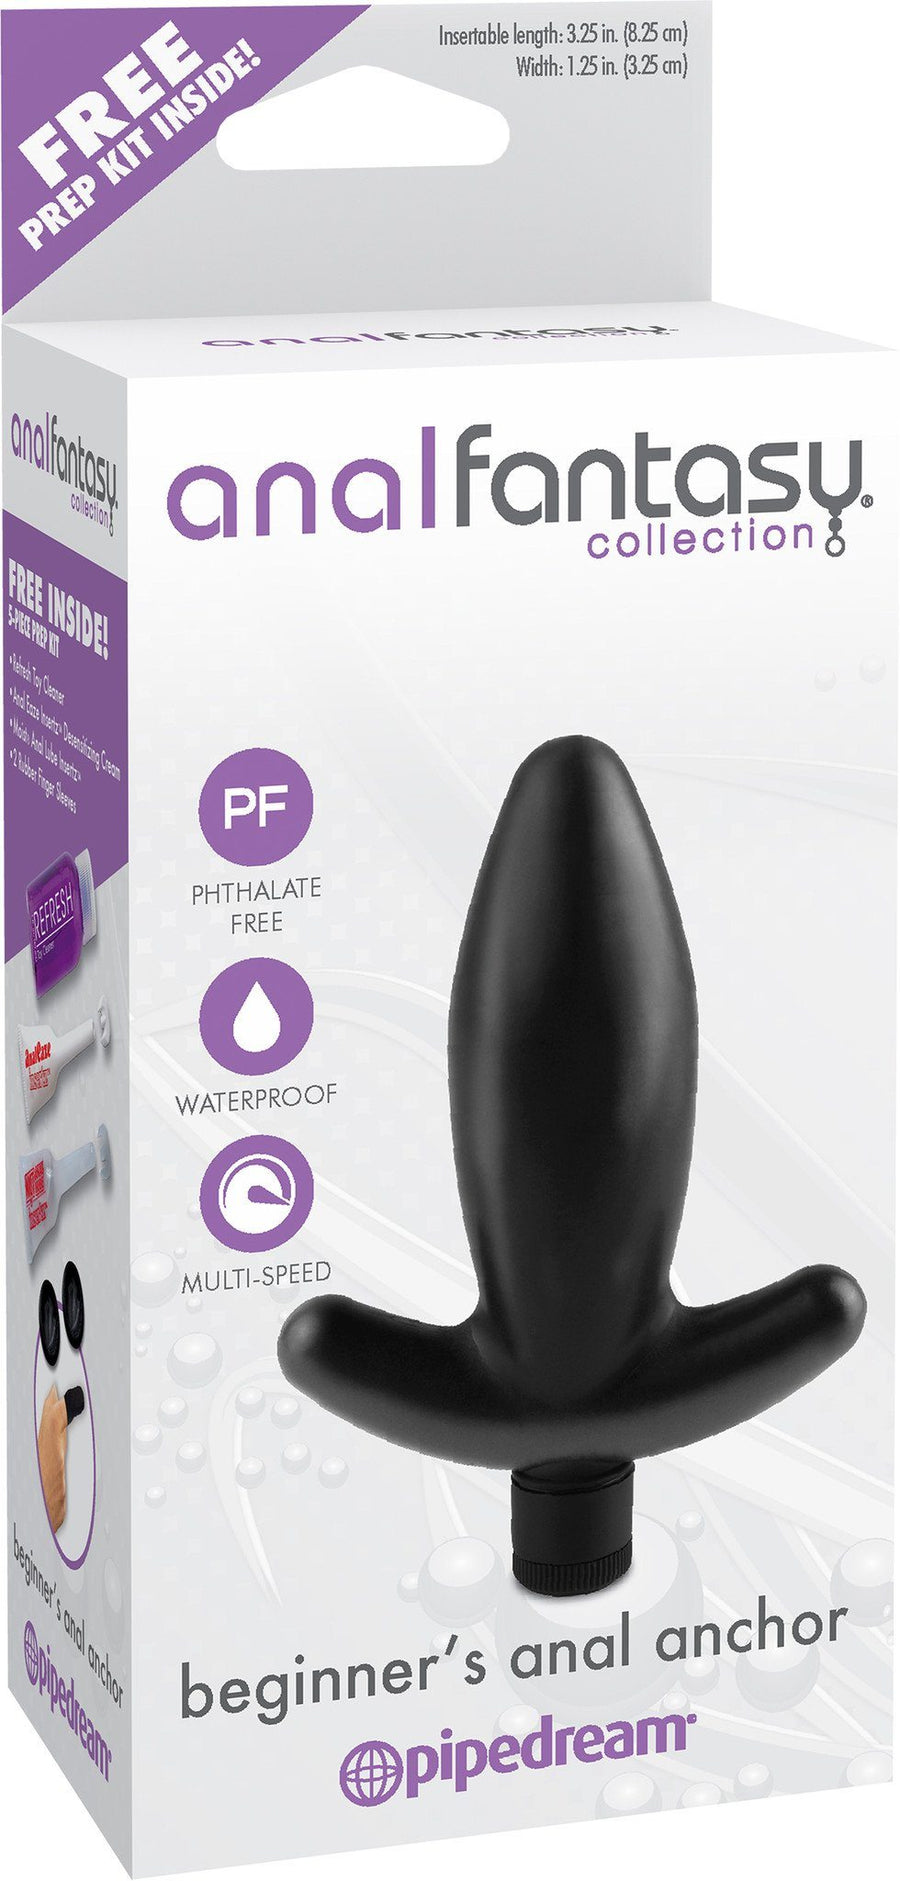 Anal Fantasy Collection Beginners Anal Anchor - joujou.com.au